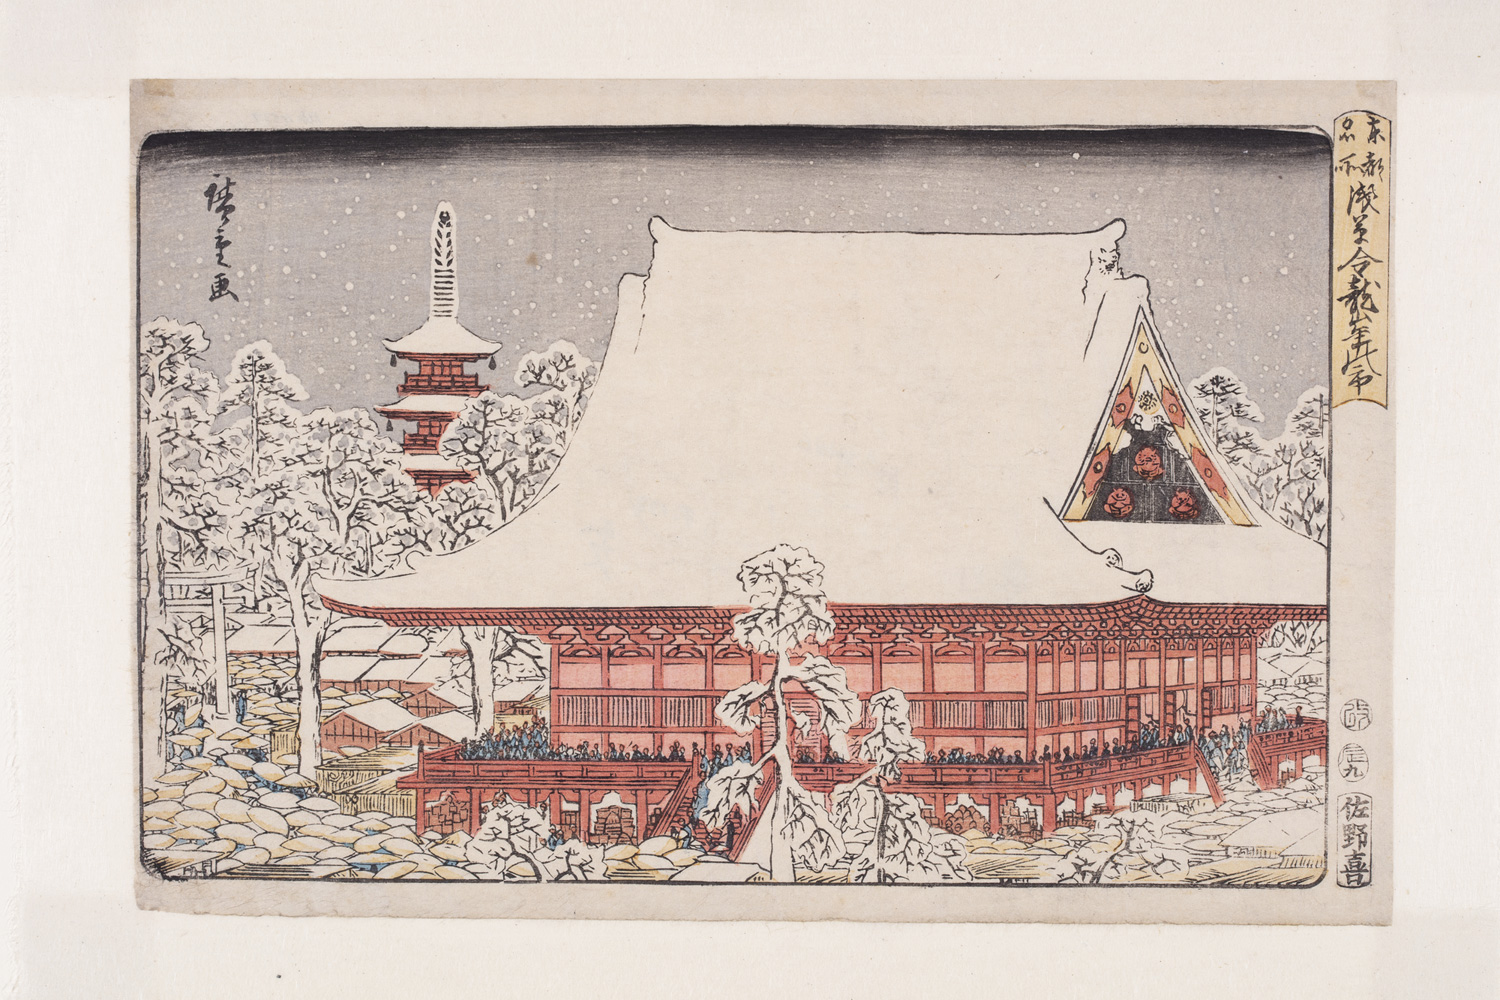 Japanese print of a large traditional Japanese building with snow on the roof. From the veranda many small figures can be seen looking out at the garden. The trees are covered with snow and walking through them we can see many small figures with their opened umbrellas. In the background there is a tall tower.